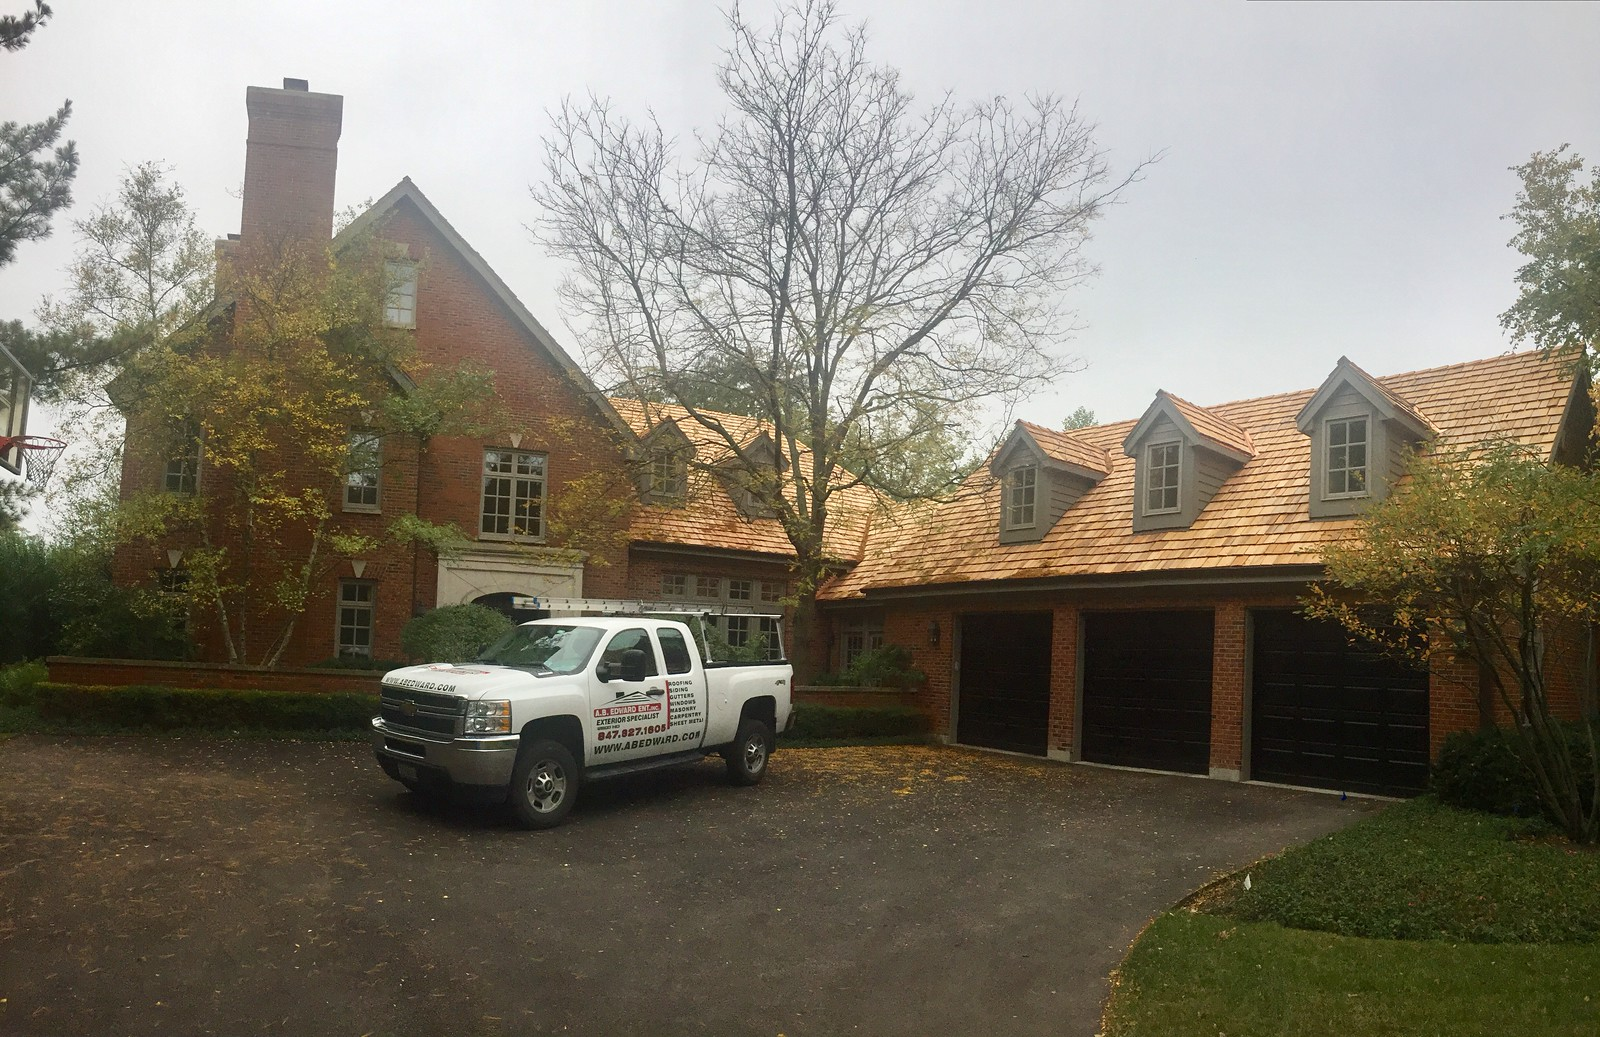 5 Must-Have Benefits of Working with a Local Roofing Contractor